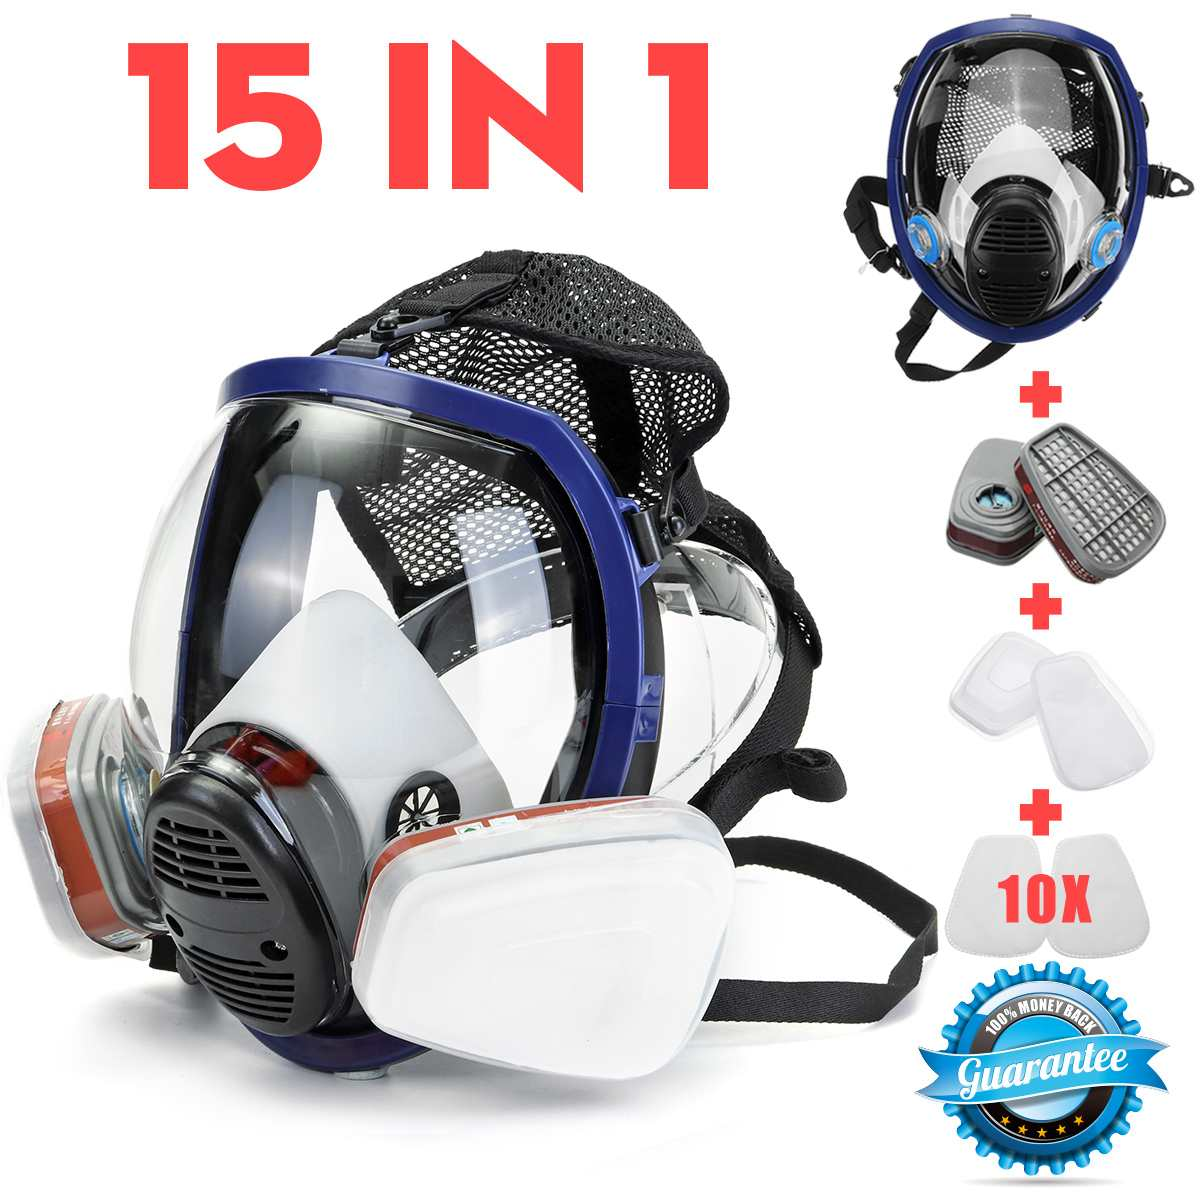 15 In 1 Full Face Gas Mask For-3M 6800 Face Piece Respirator Painting Spraying Mask Chemical Laboratory Medical Safety Mask